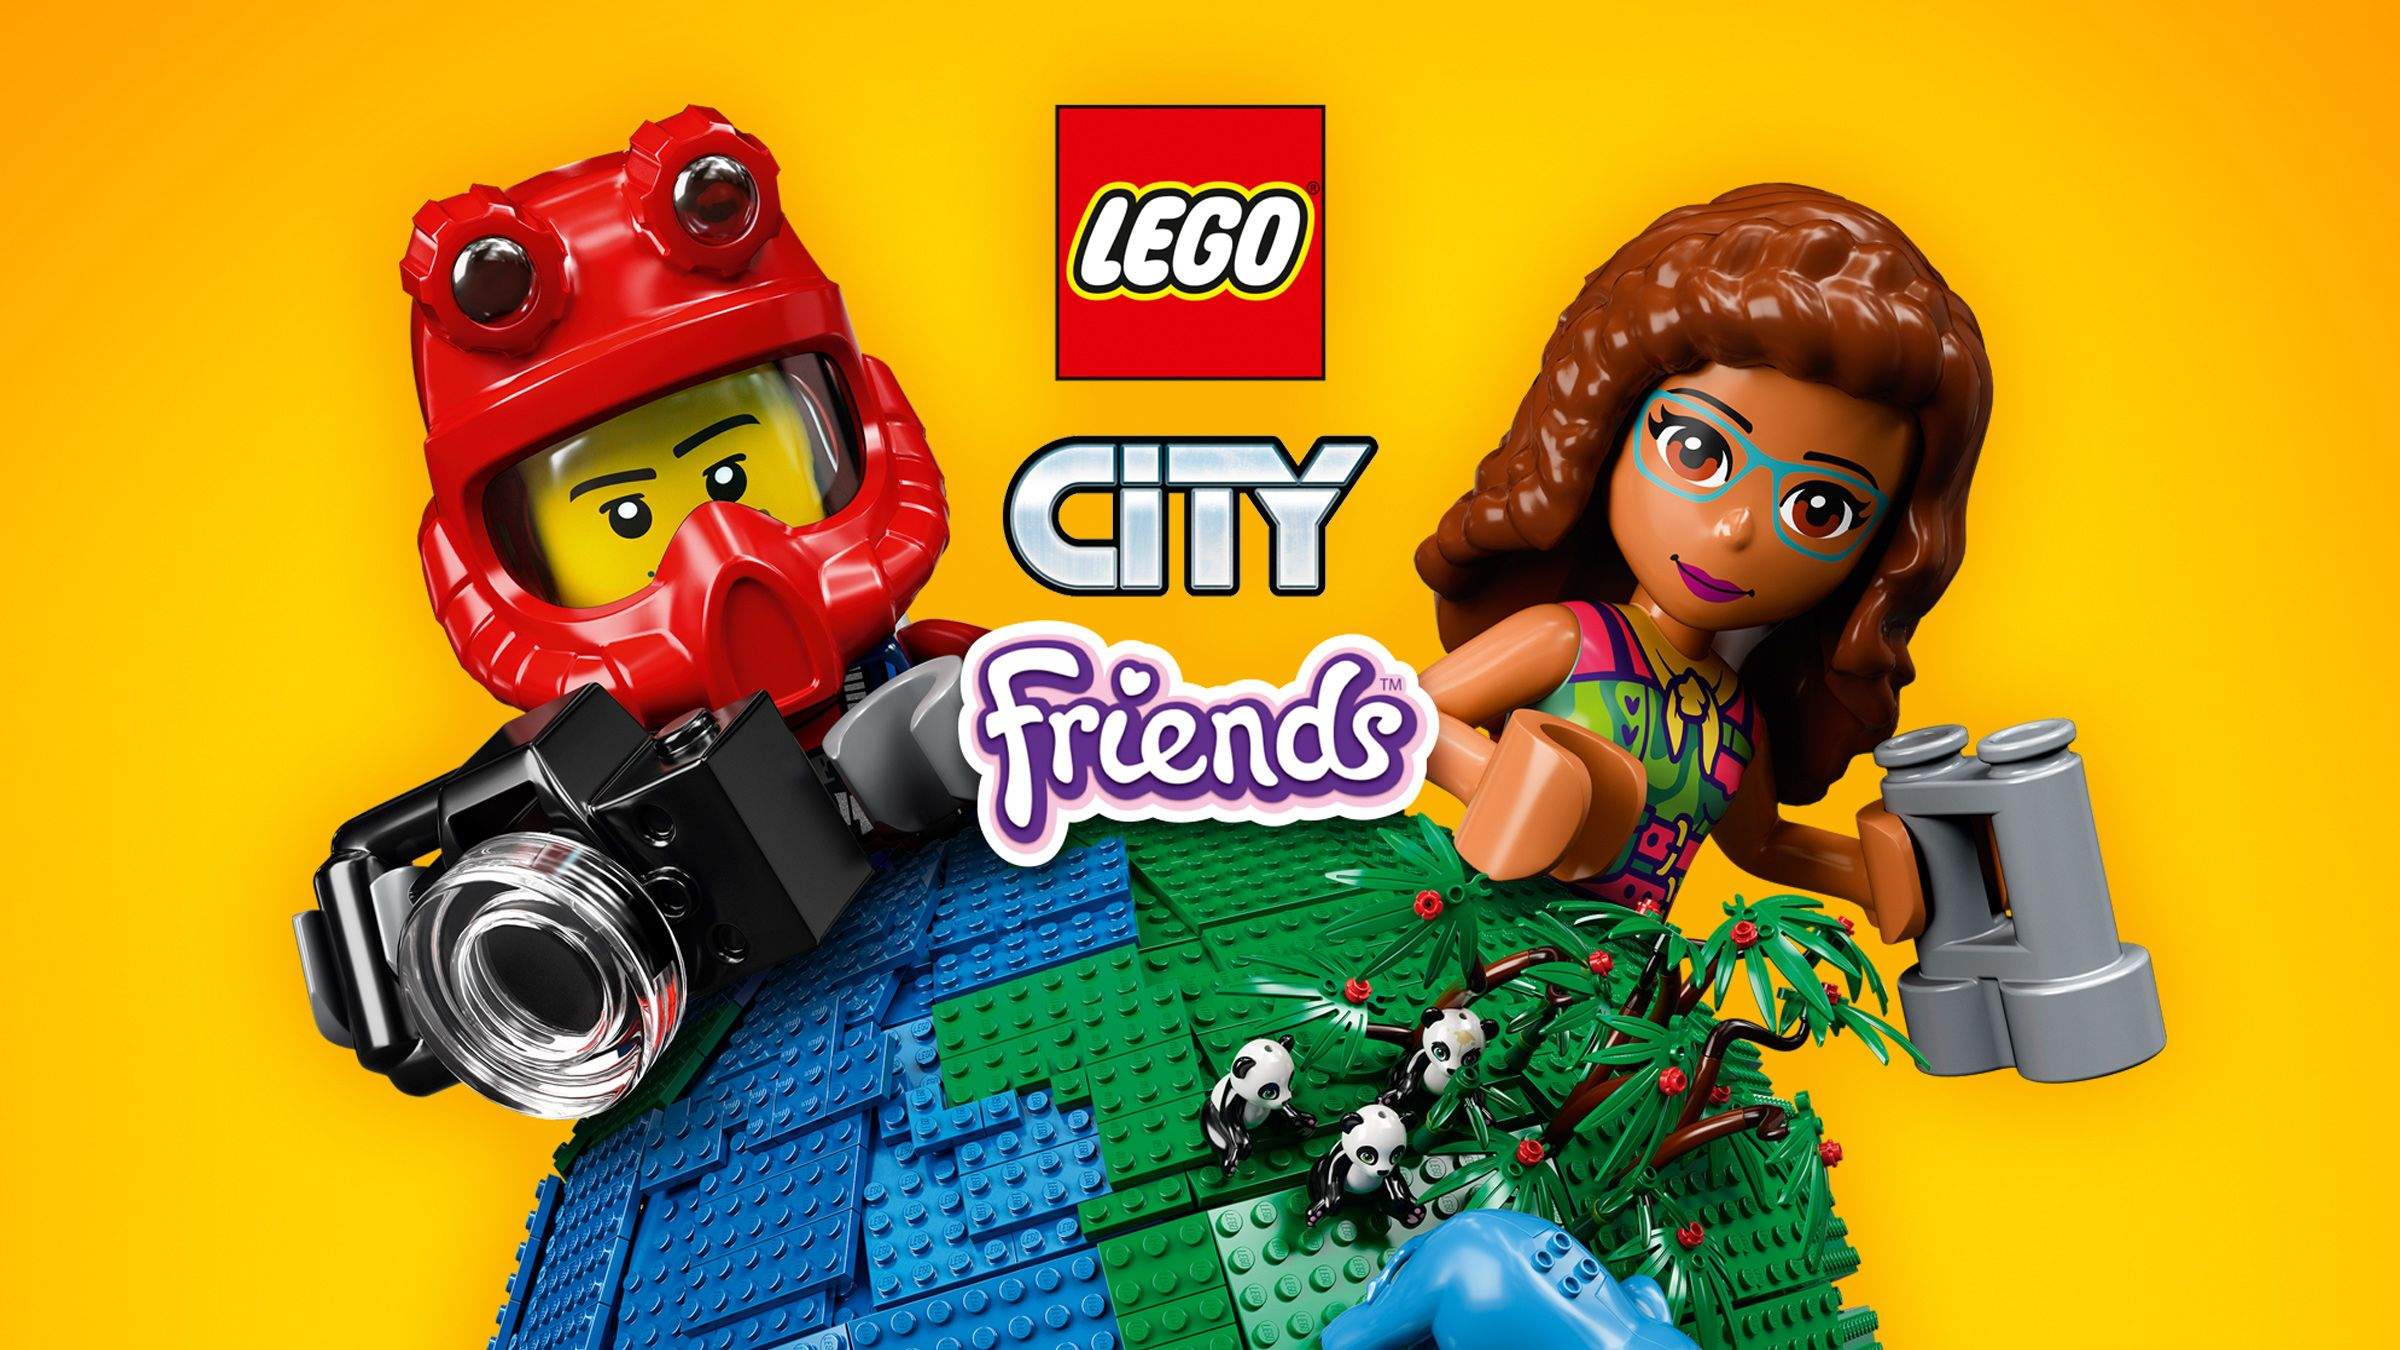 Lego City & Friends